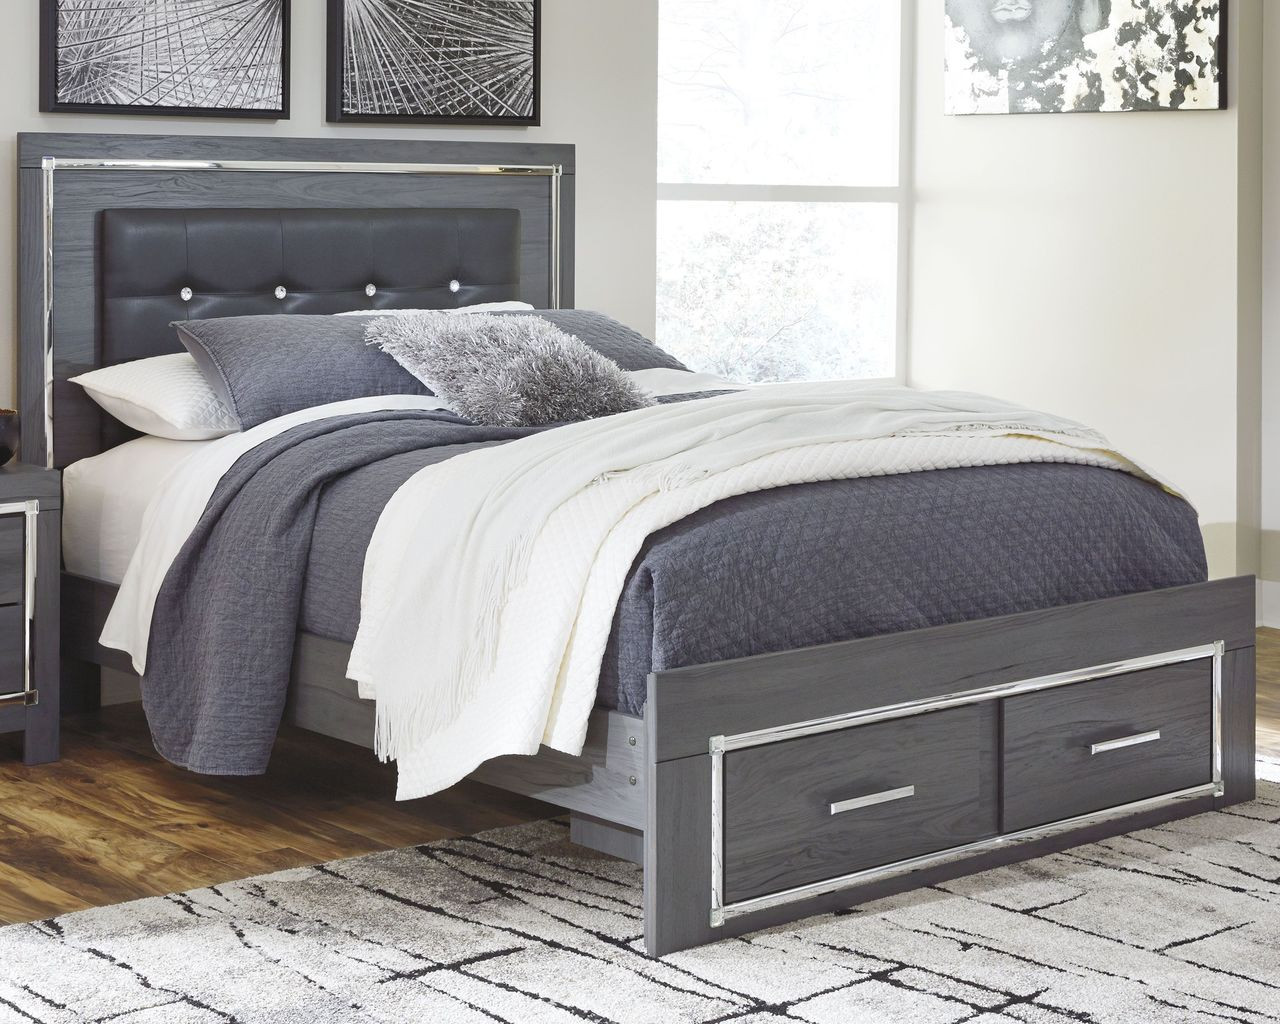 The Lodanna Gray Queen Panel Bed With Storage Available At Ritz Furniture Planet Serving Mississauga On